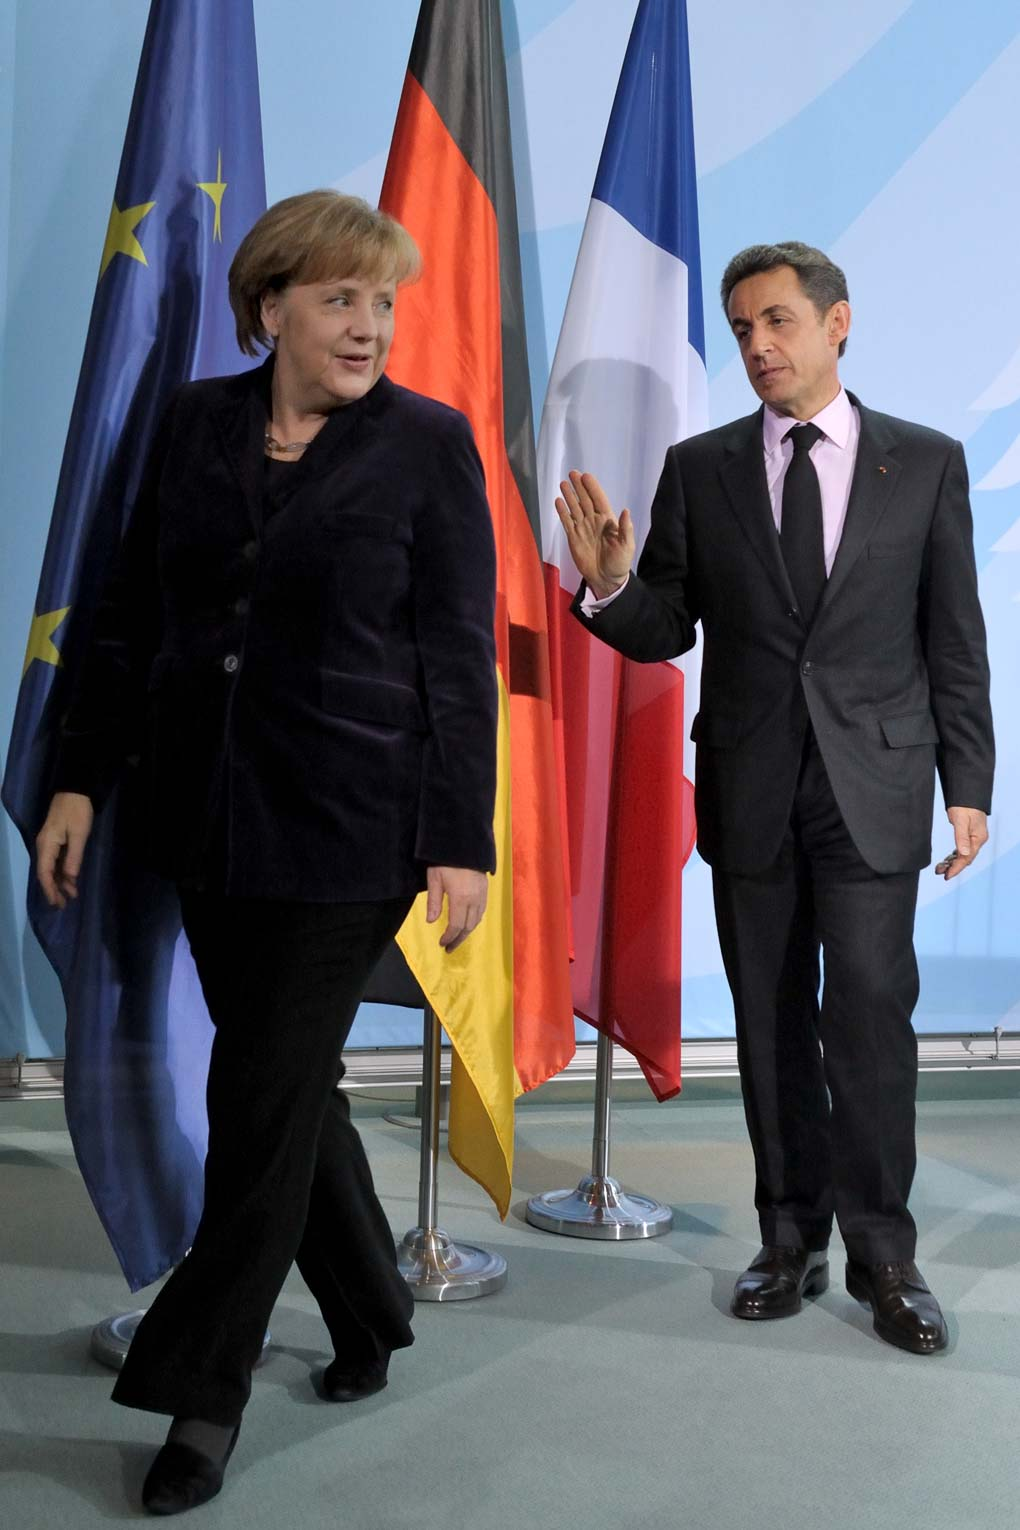 Angela Merkel, Chancellor of the Federal Republic of Germany, and Nicolas Sarkozy, President of the French Republic (Berlin, 2012). Photo © Aris Fotografie